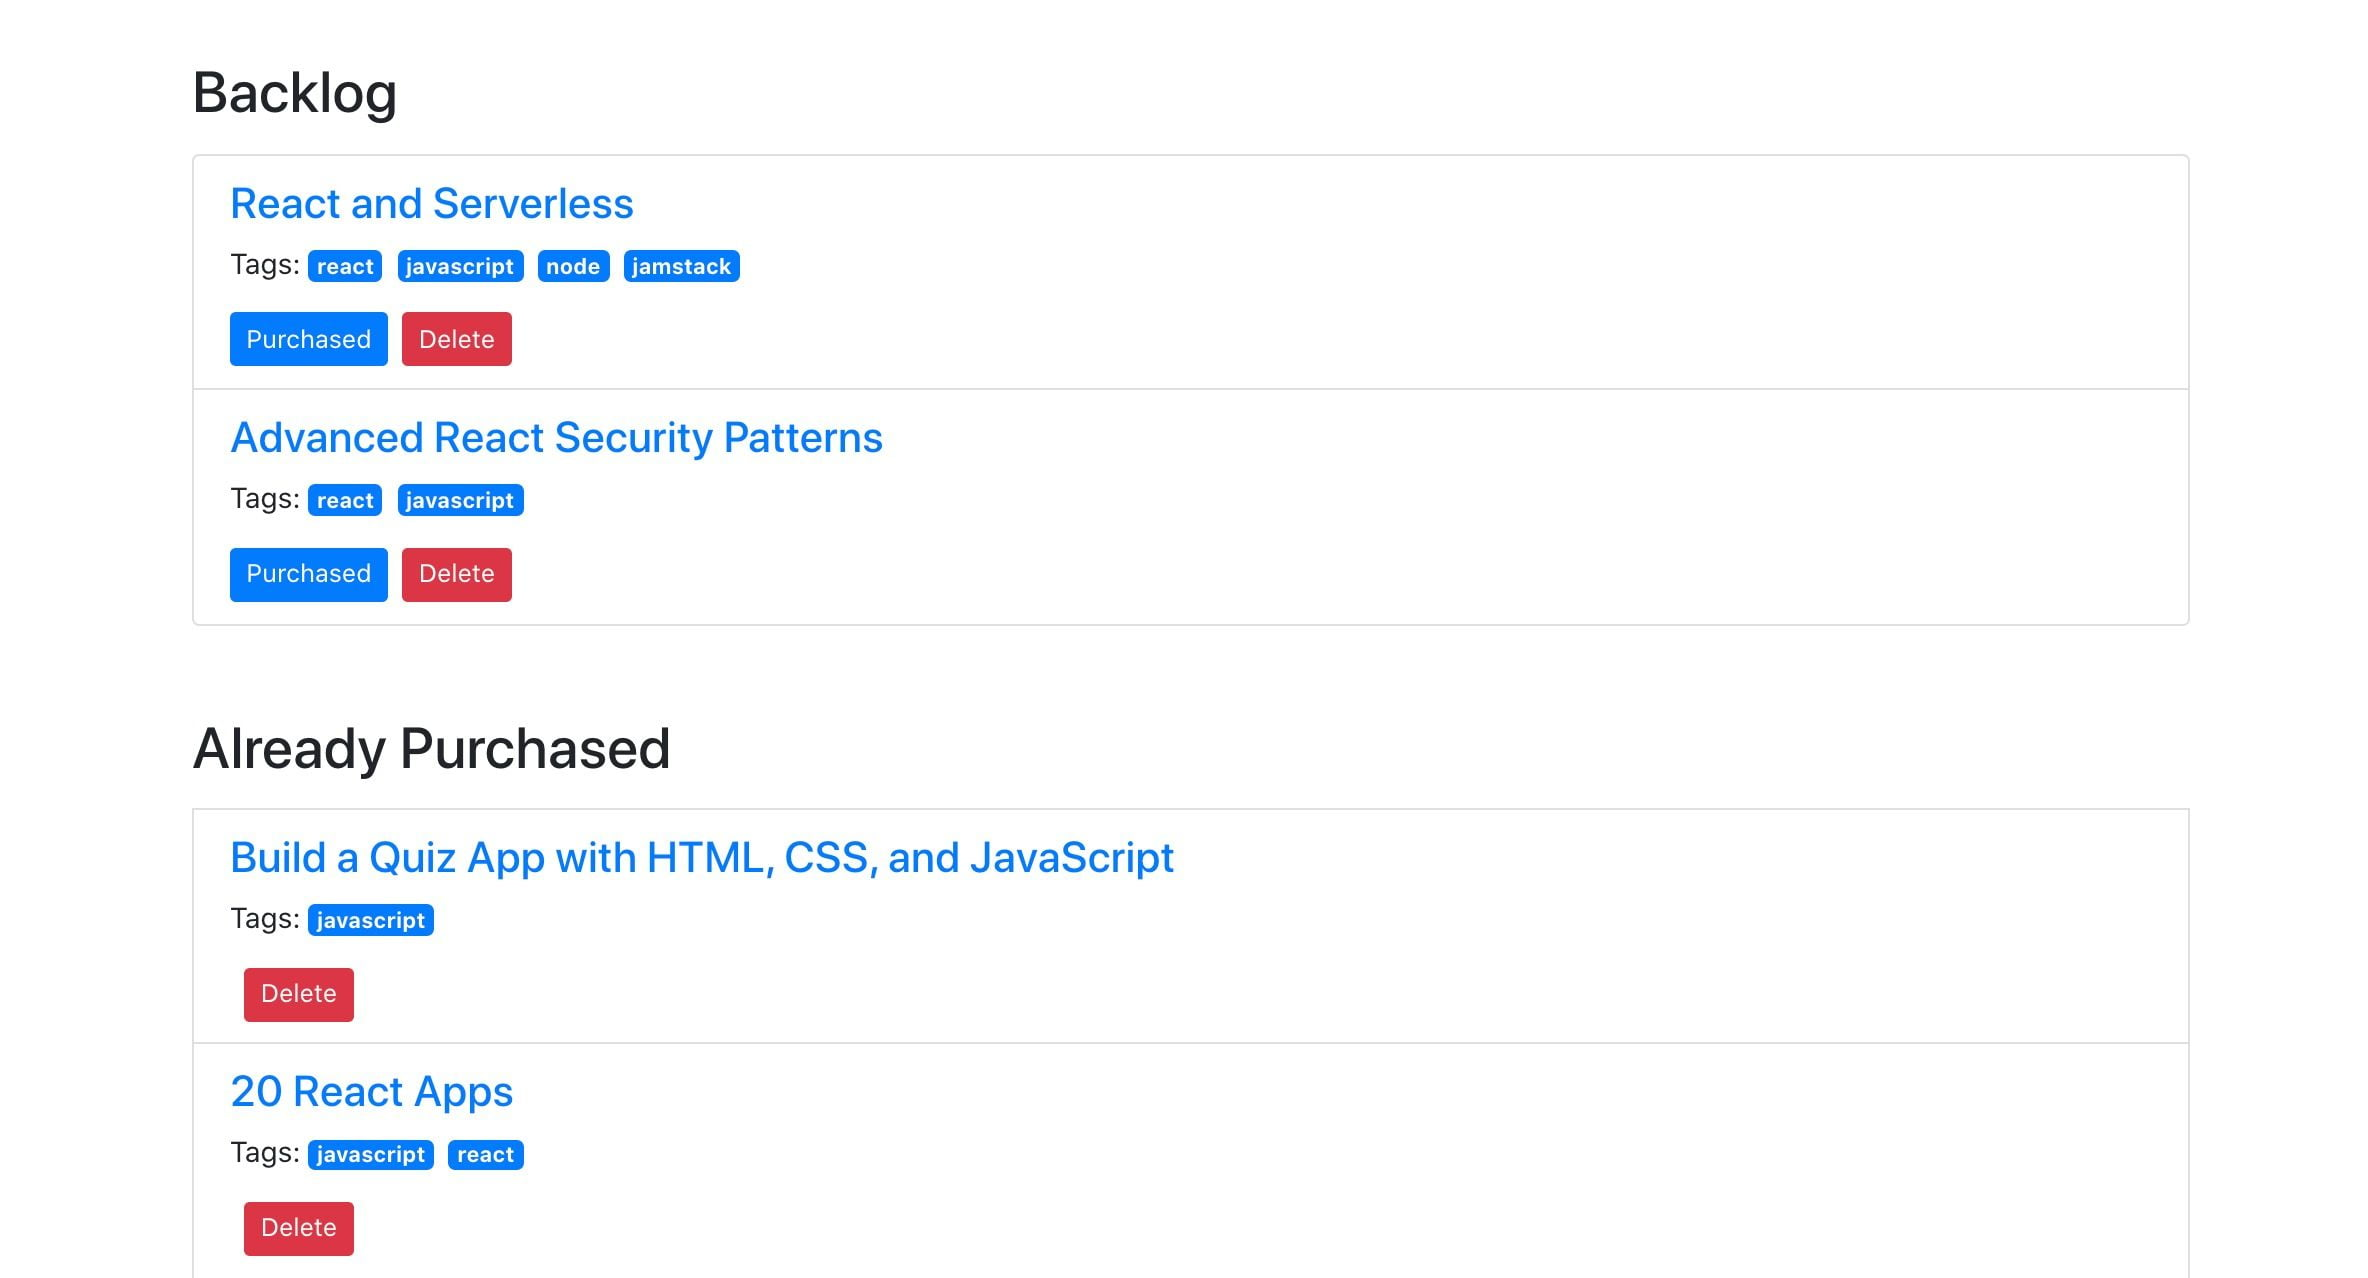 Going Jamstack with React, Serverless, and Airtable 43